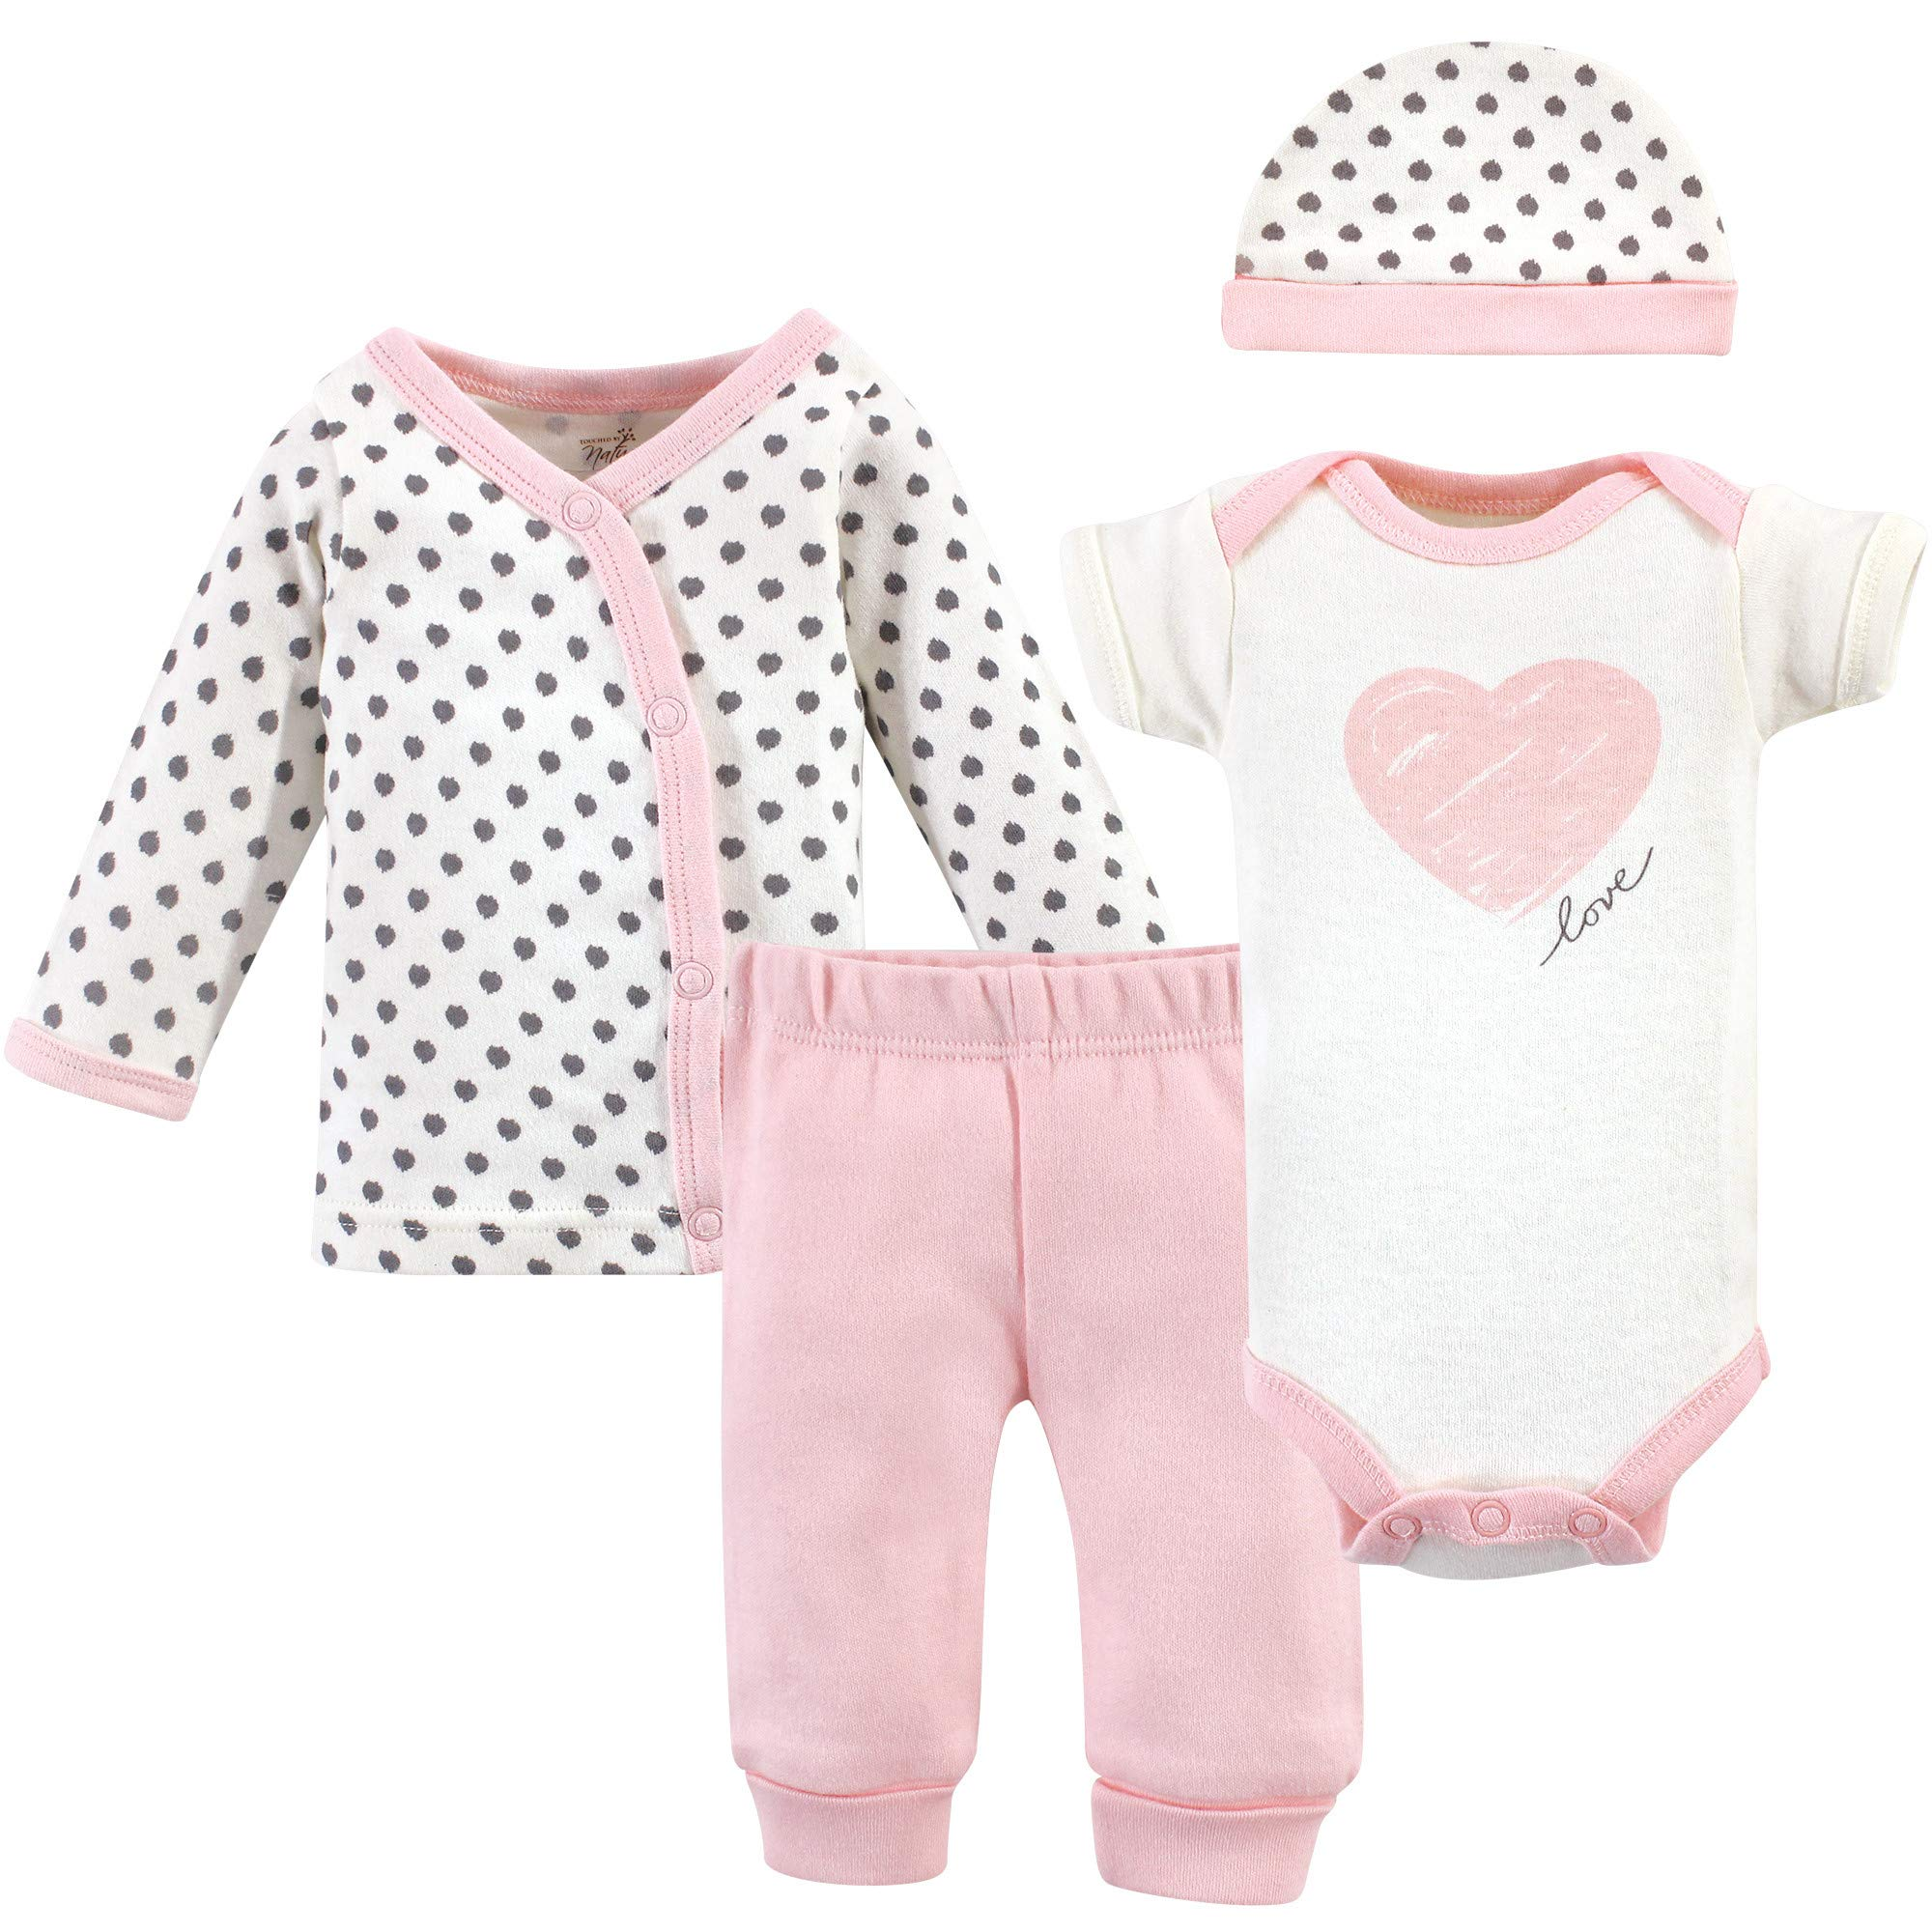 Touched by Nature Baby Organic Layette, Pink/Gray Scribble 4 Piece Set, Preemie by Touched by Nature